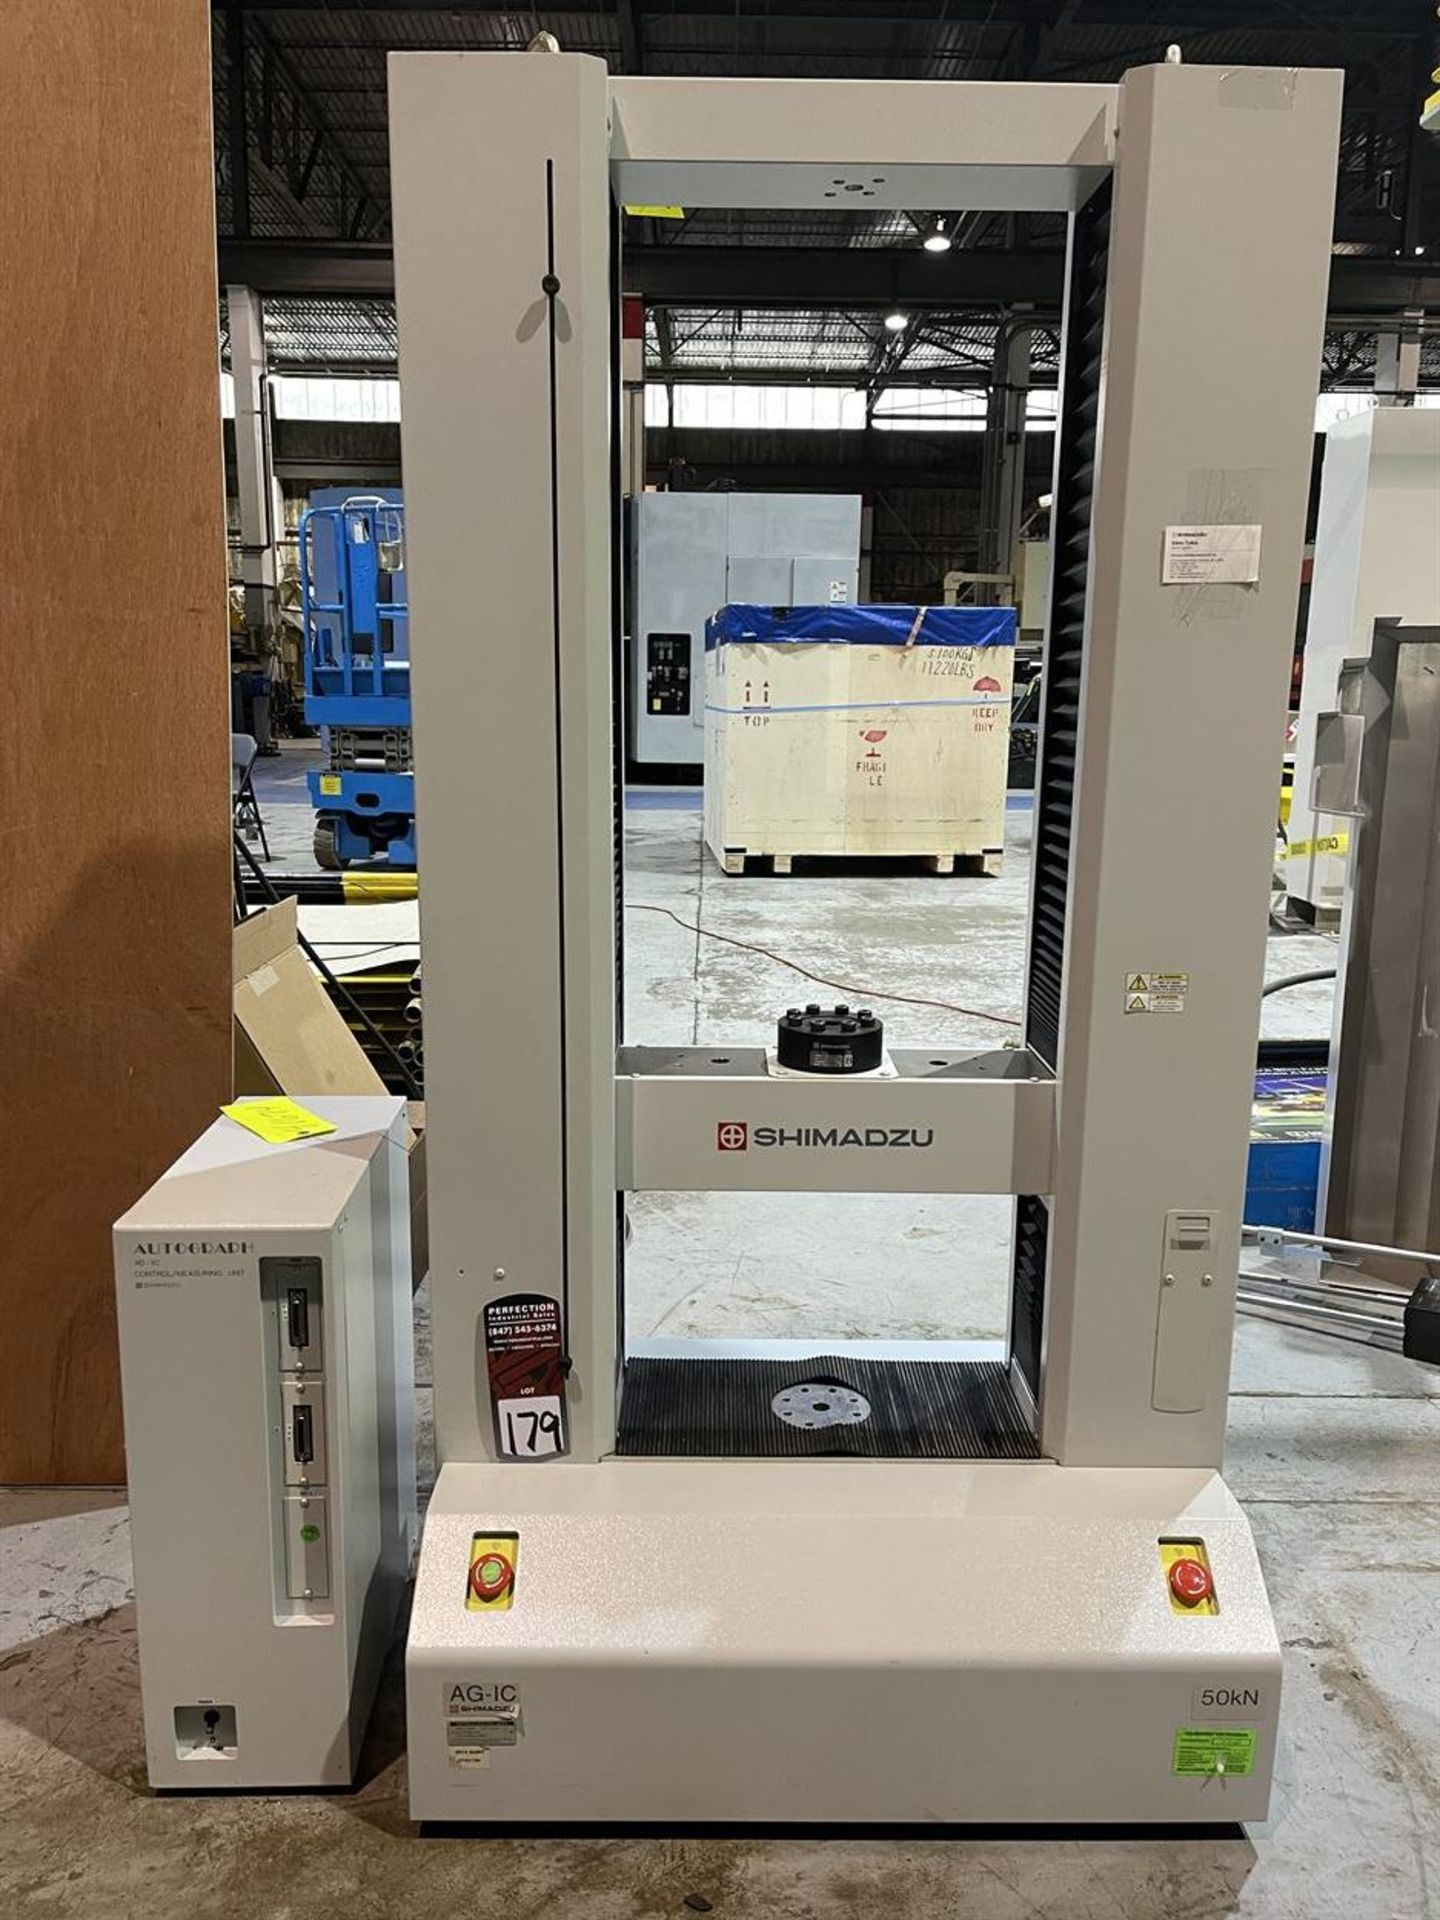 SHIMADZU AG-IC UNIVERSAL / TENSILE STRENGTH TESTER, s/n I30124936053, Autograph AG-IC Control/ - Image 2 of 5